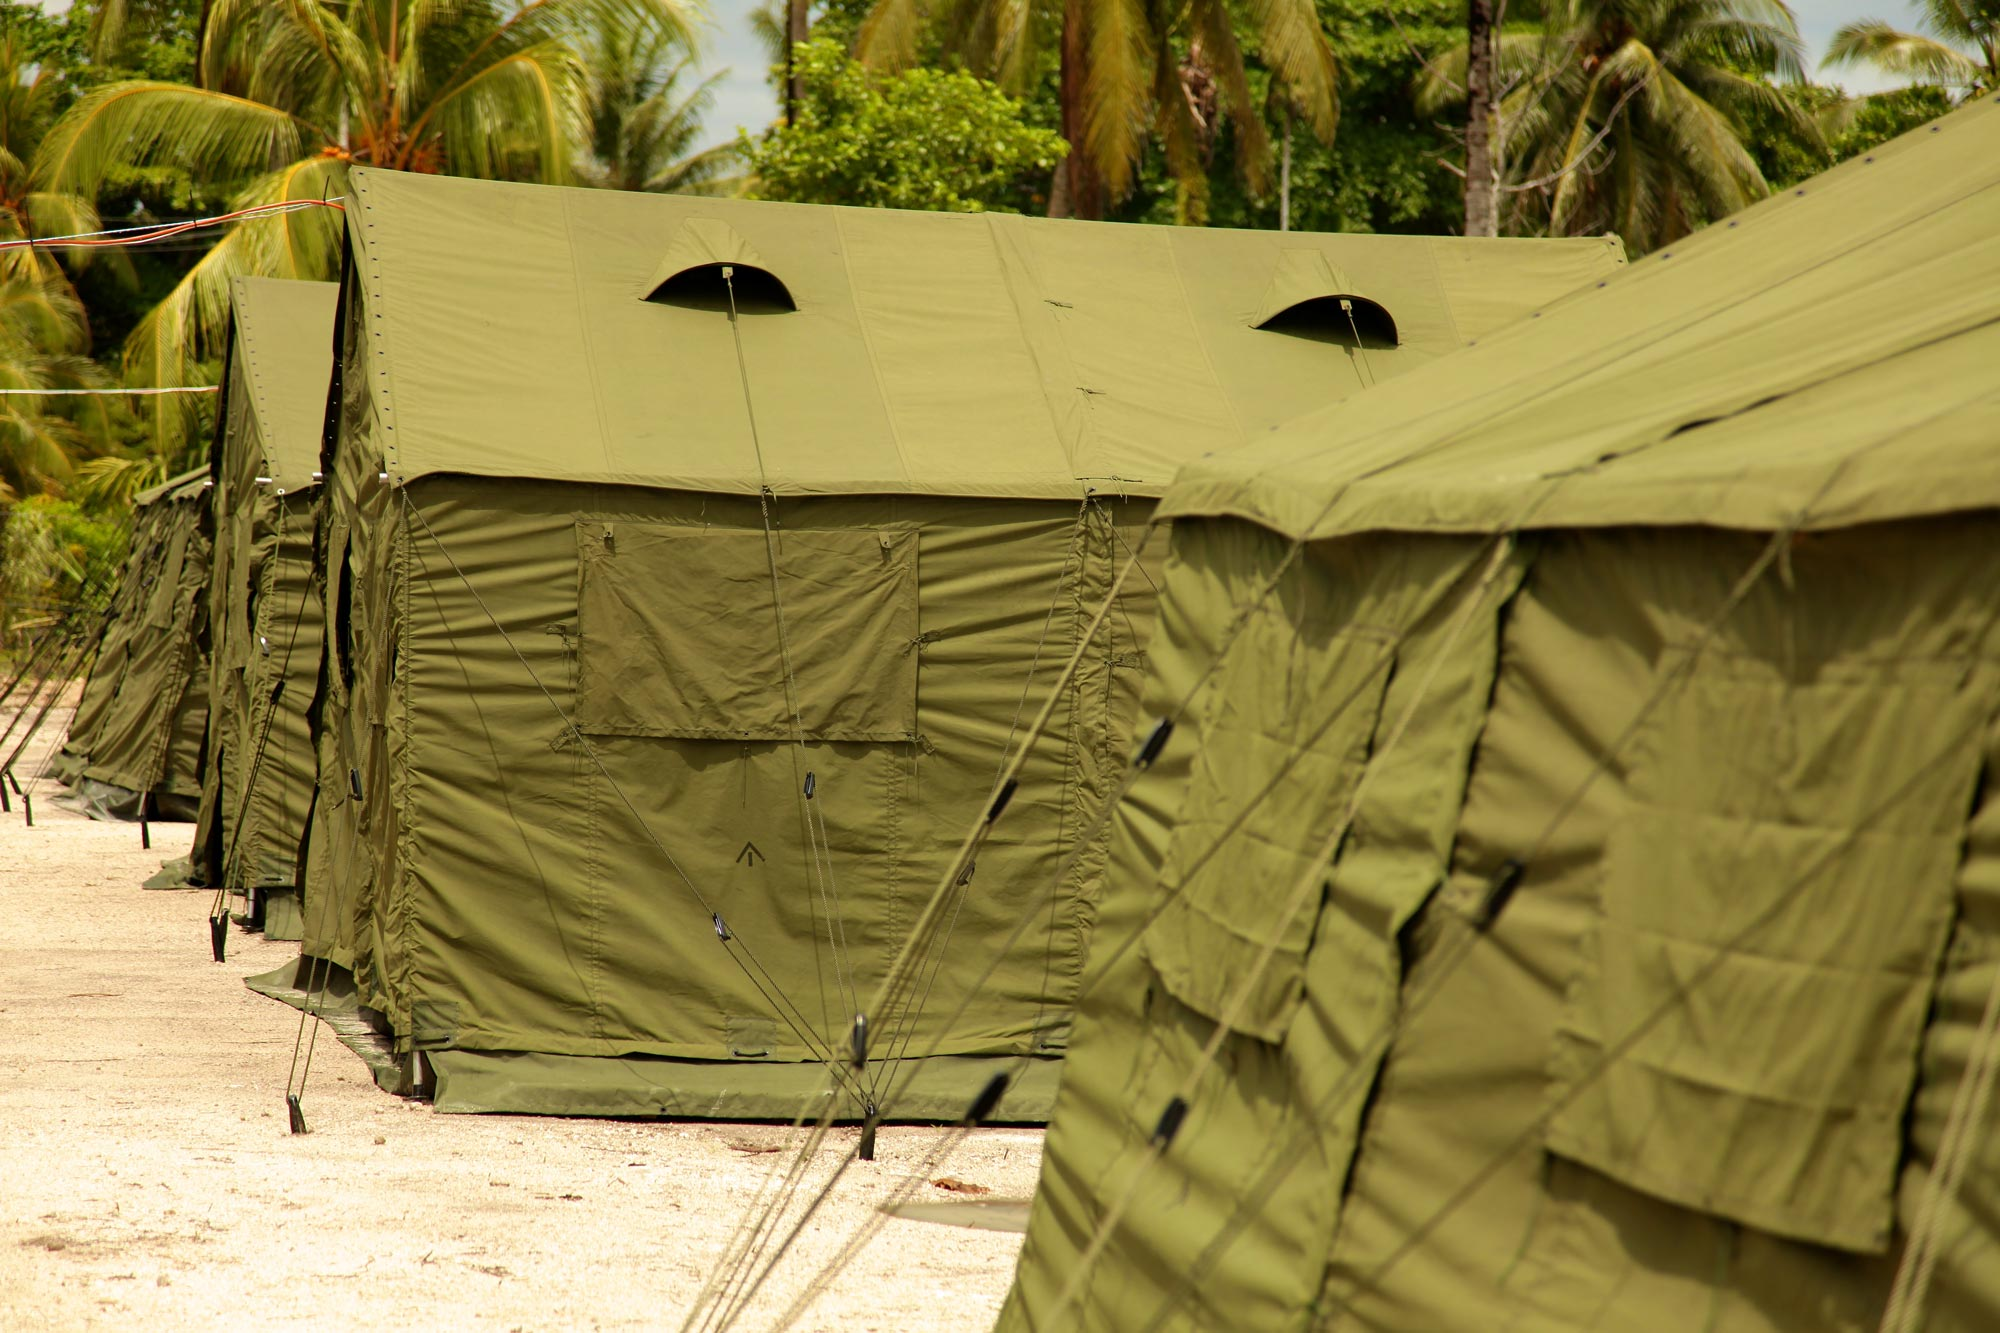 Manus Island Detention Centre. Photo by the Australian Department of Immigration and Citizenship via Getty Images